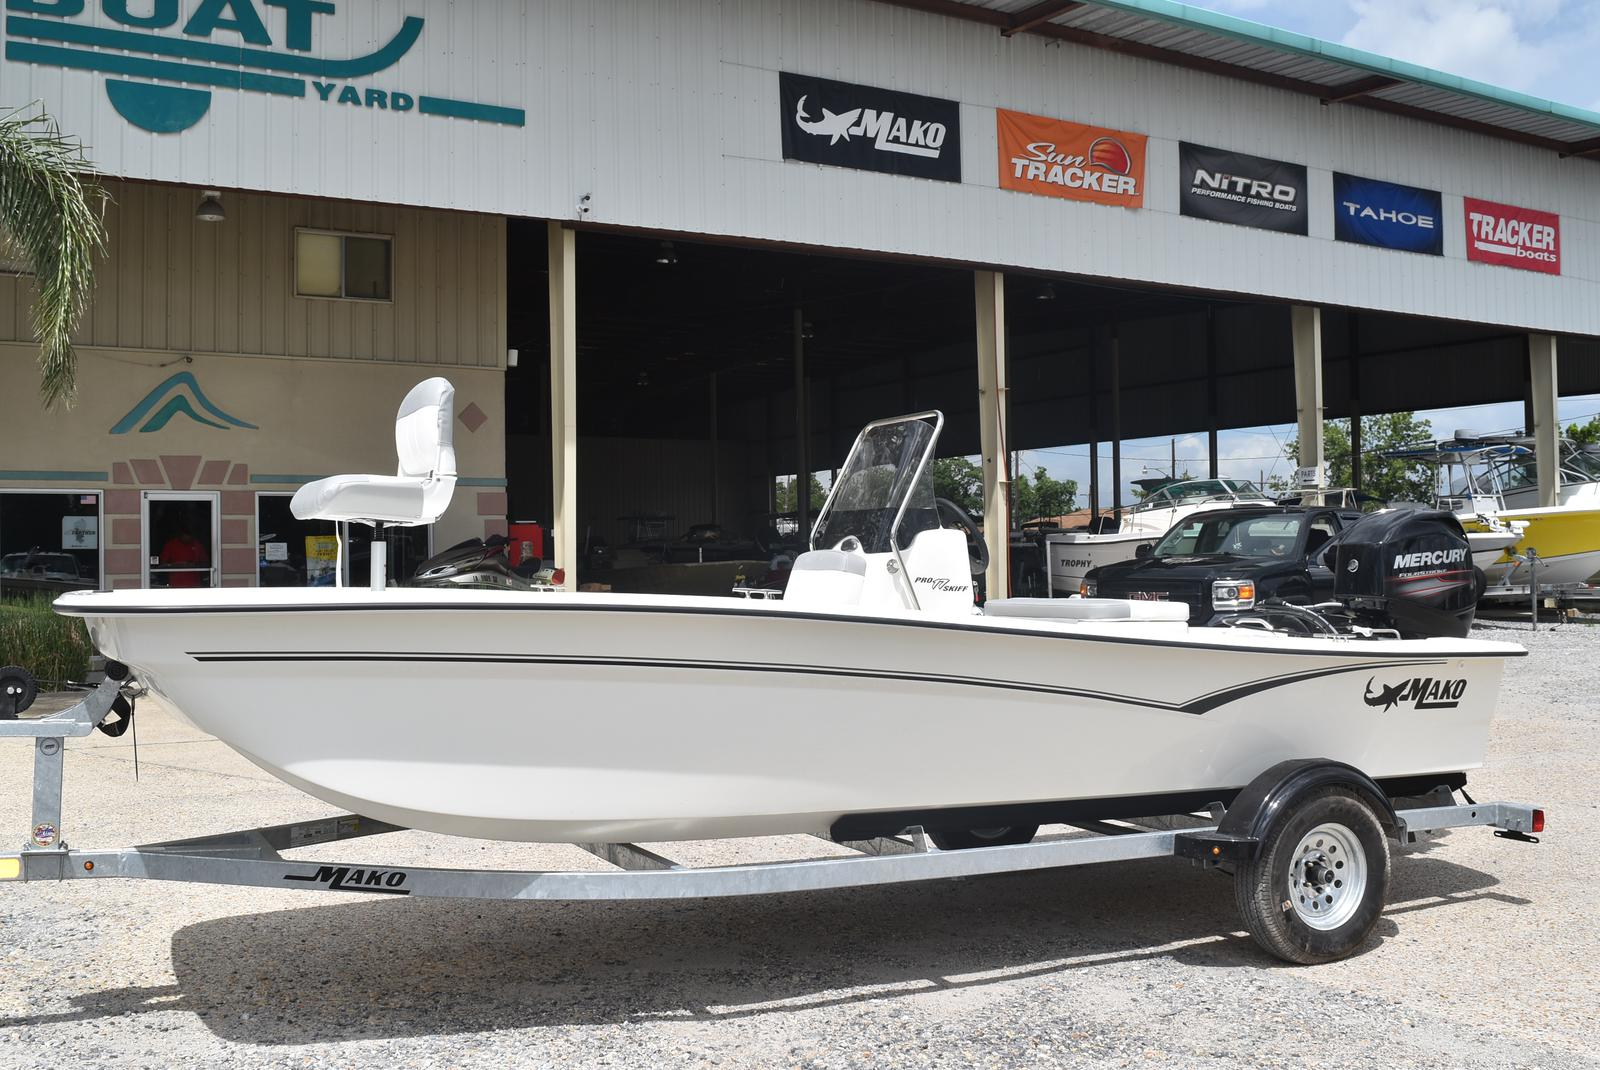 2020 Mako boat for sale, model of the boat is Pro Skiff 17, 75 ELPT & Image # 137 of 702